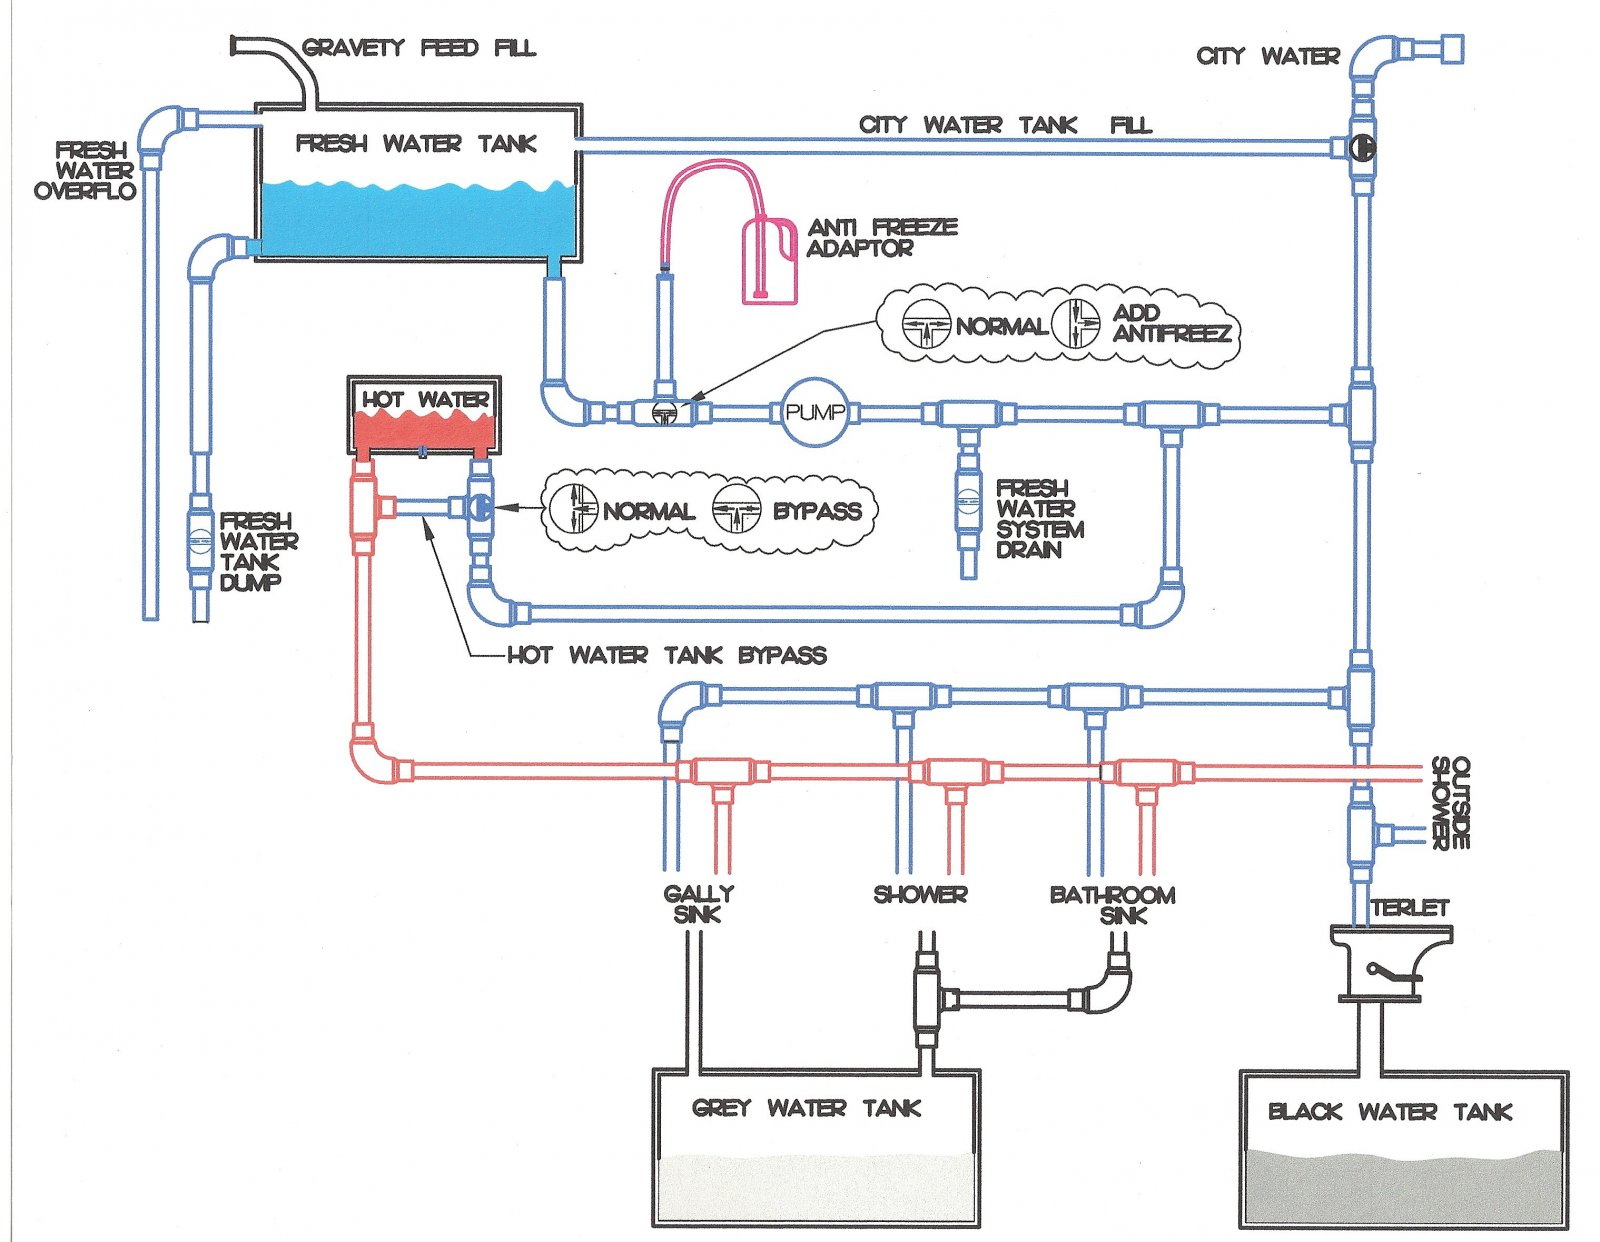 marine toilet plumbing diagram with Hot Cold Water Valves Reversed 30472 on Stabilo Point 88 Fineliner Pen besides 54581F Mi1 besides Aquarium Filtration additionally Cigarette Holder For Women Long furthermore Hot Cold Water Valves Reversed 30472.